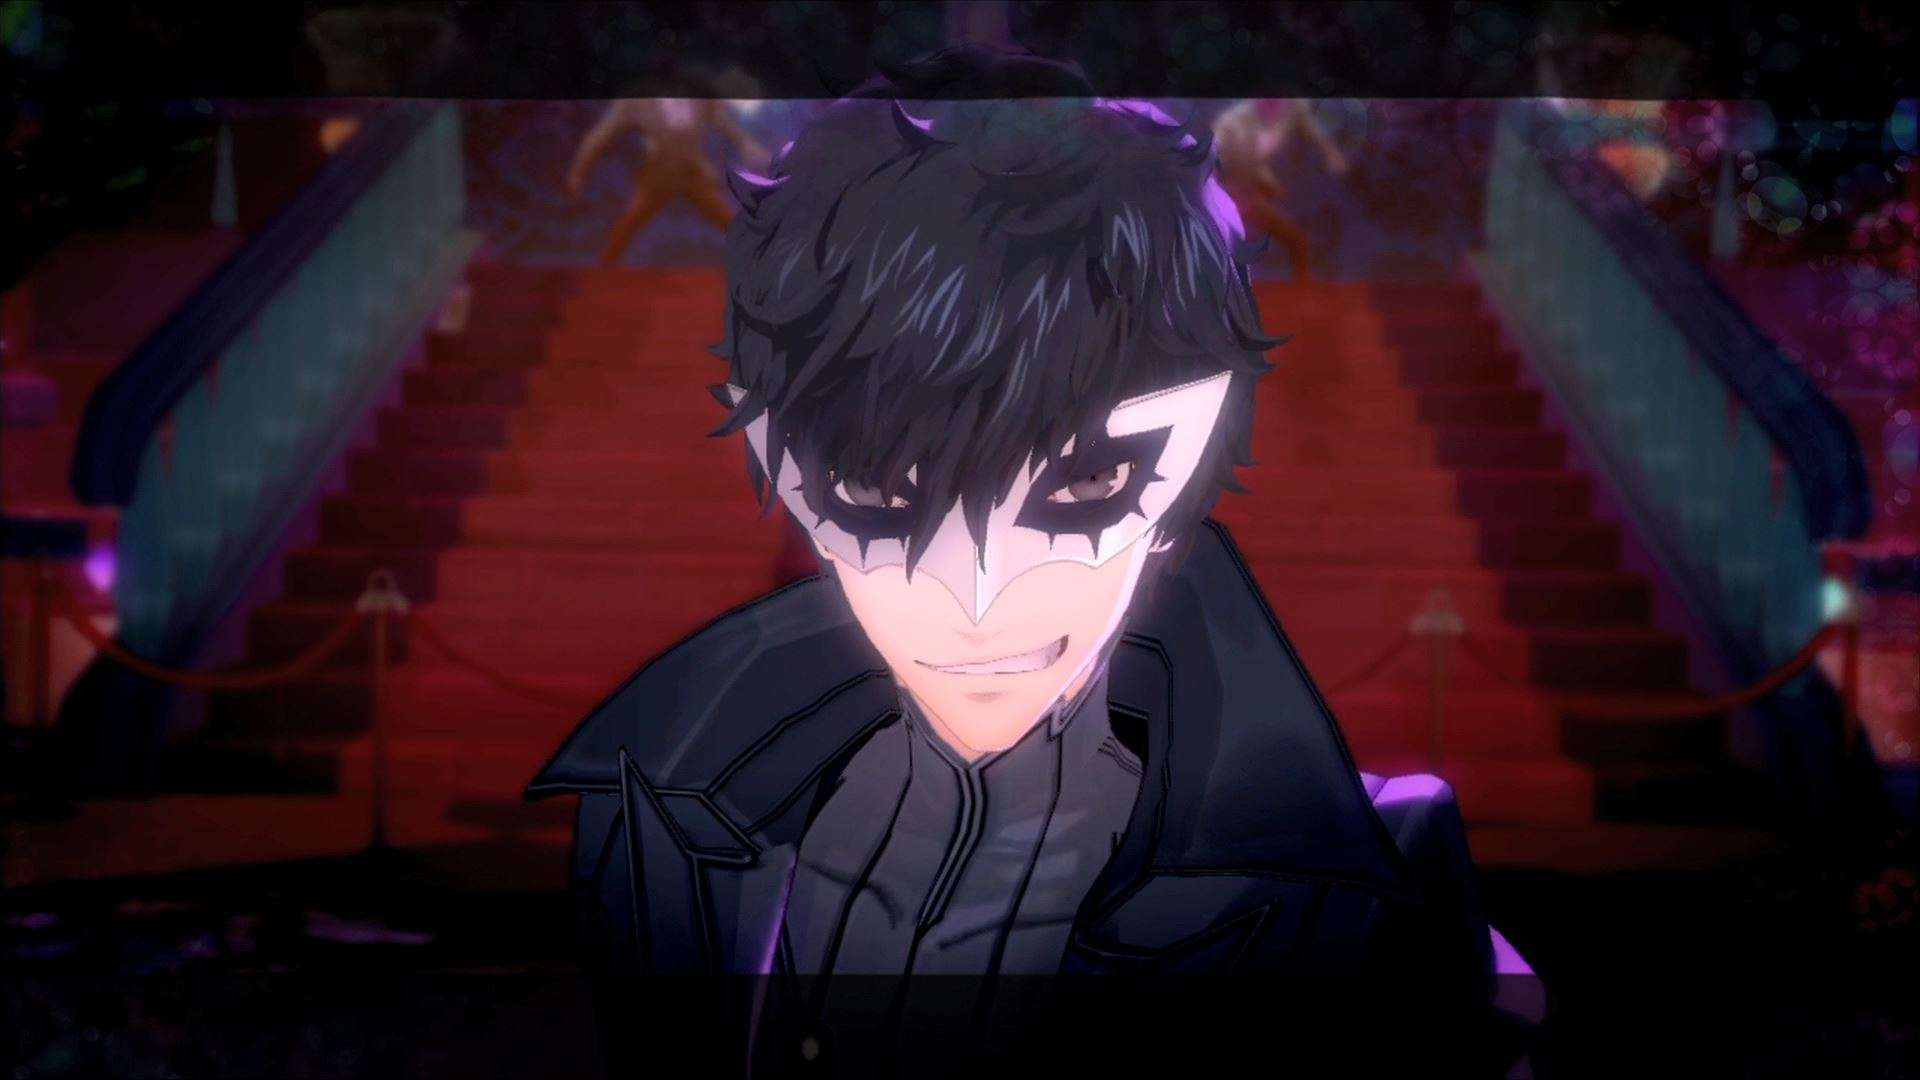 Pictures From The Persona 5 Pv 02 Trailer Have Leaked